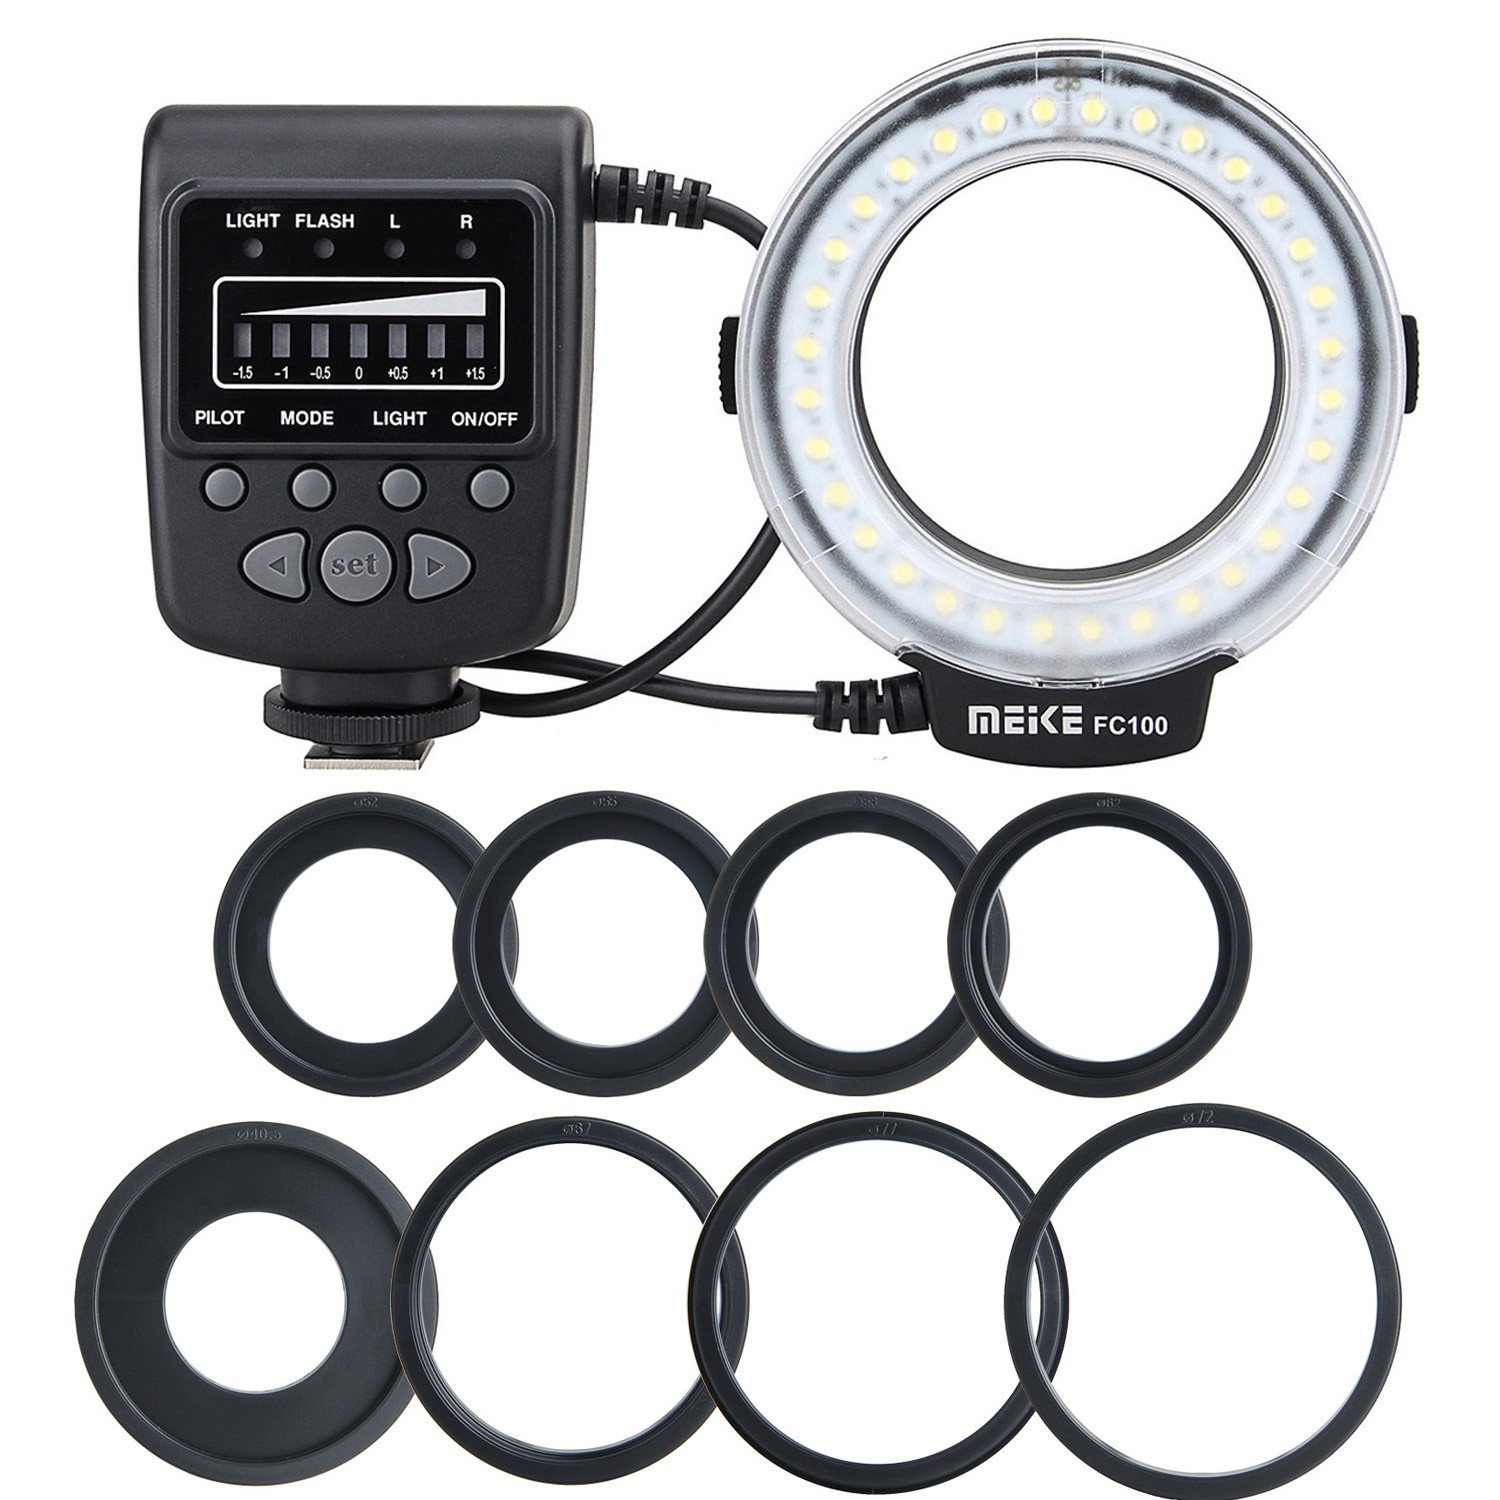 Meike FC-100 FC100 Macro Ring Flash Light for Nikon D7000 D5100 D90 D80s D70 series D200 D60 D50 D40 series S5 Pro F6 etc